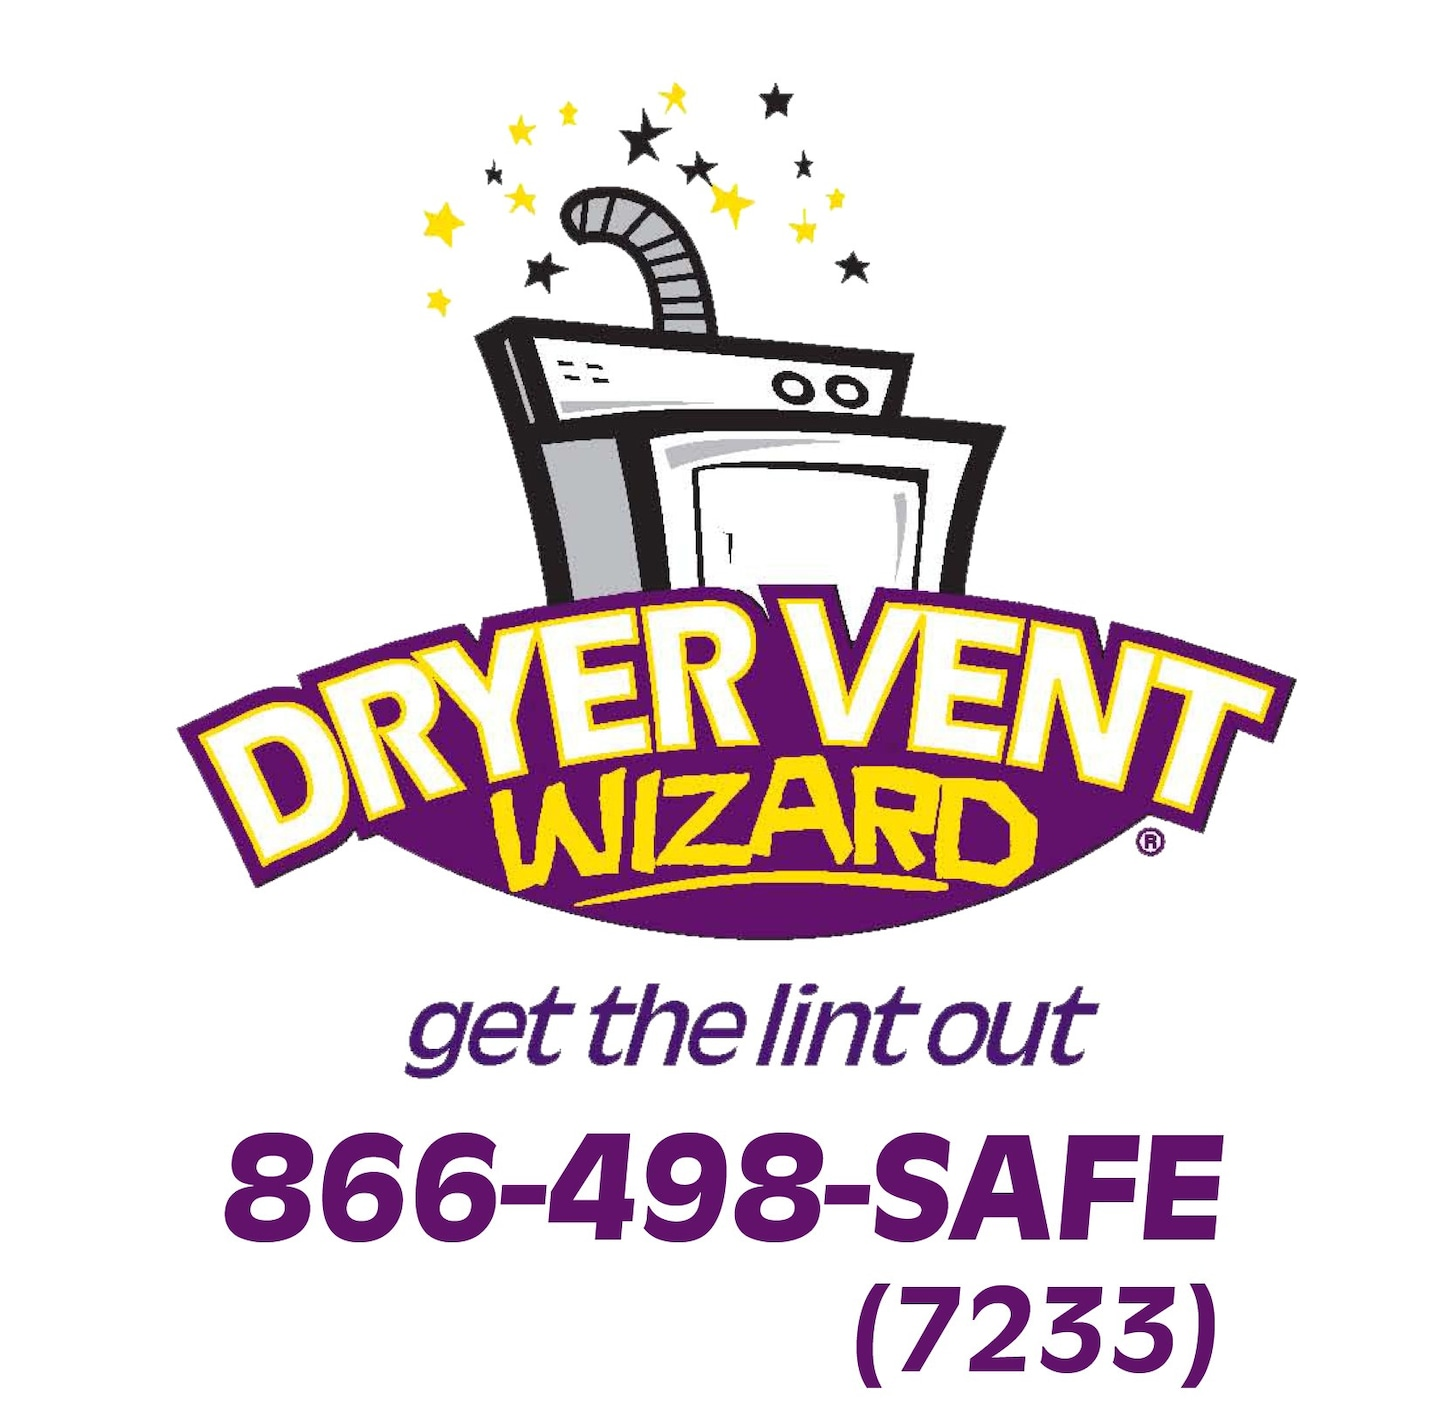 Dryer Vent Wizard of Oakland County